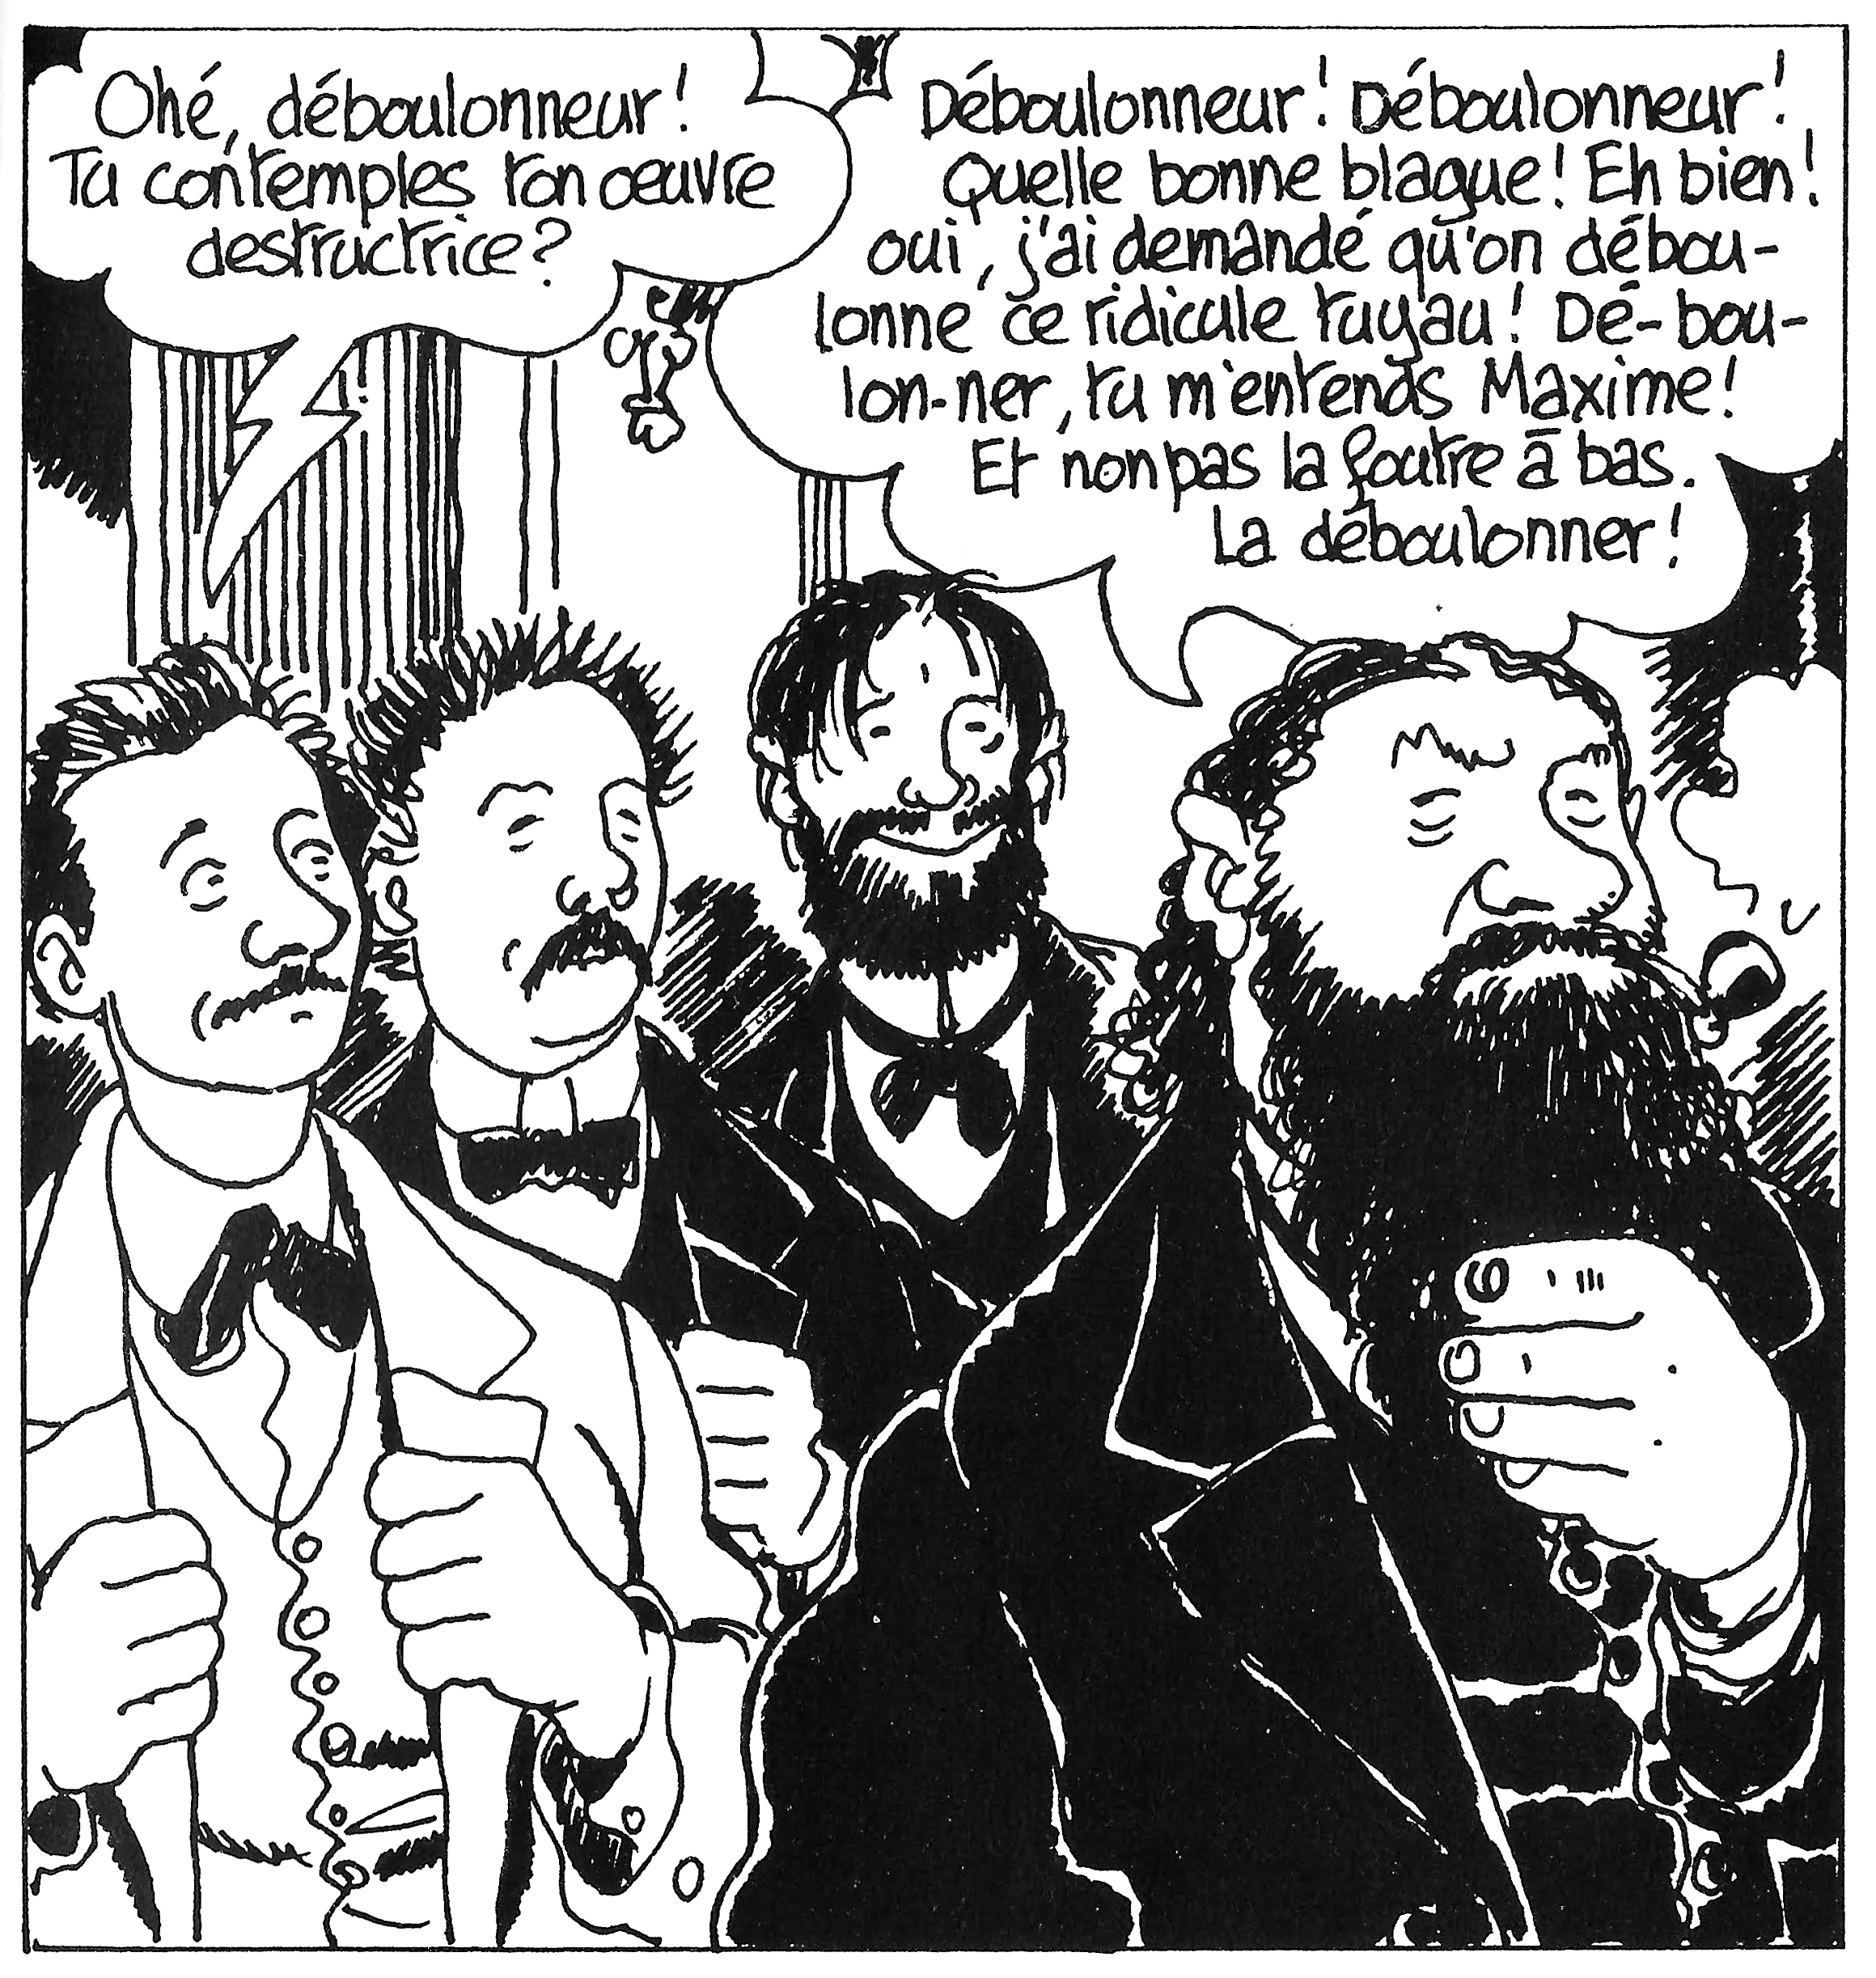 Jacques Tardi (drawing) et Jean Vautrin (storyline), Le Cri du peuple, 2 : L'Espoir assassiné, Casterman, 2004